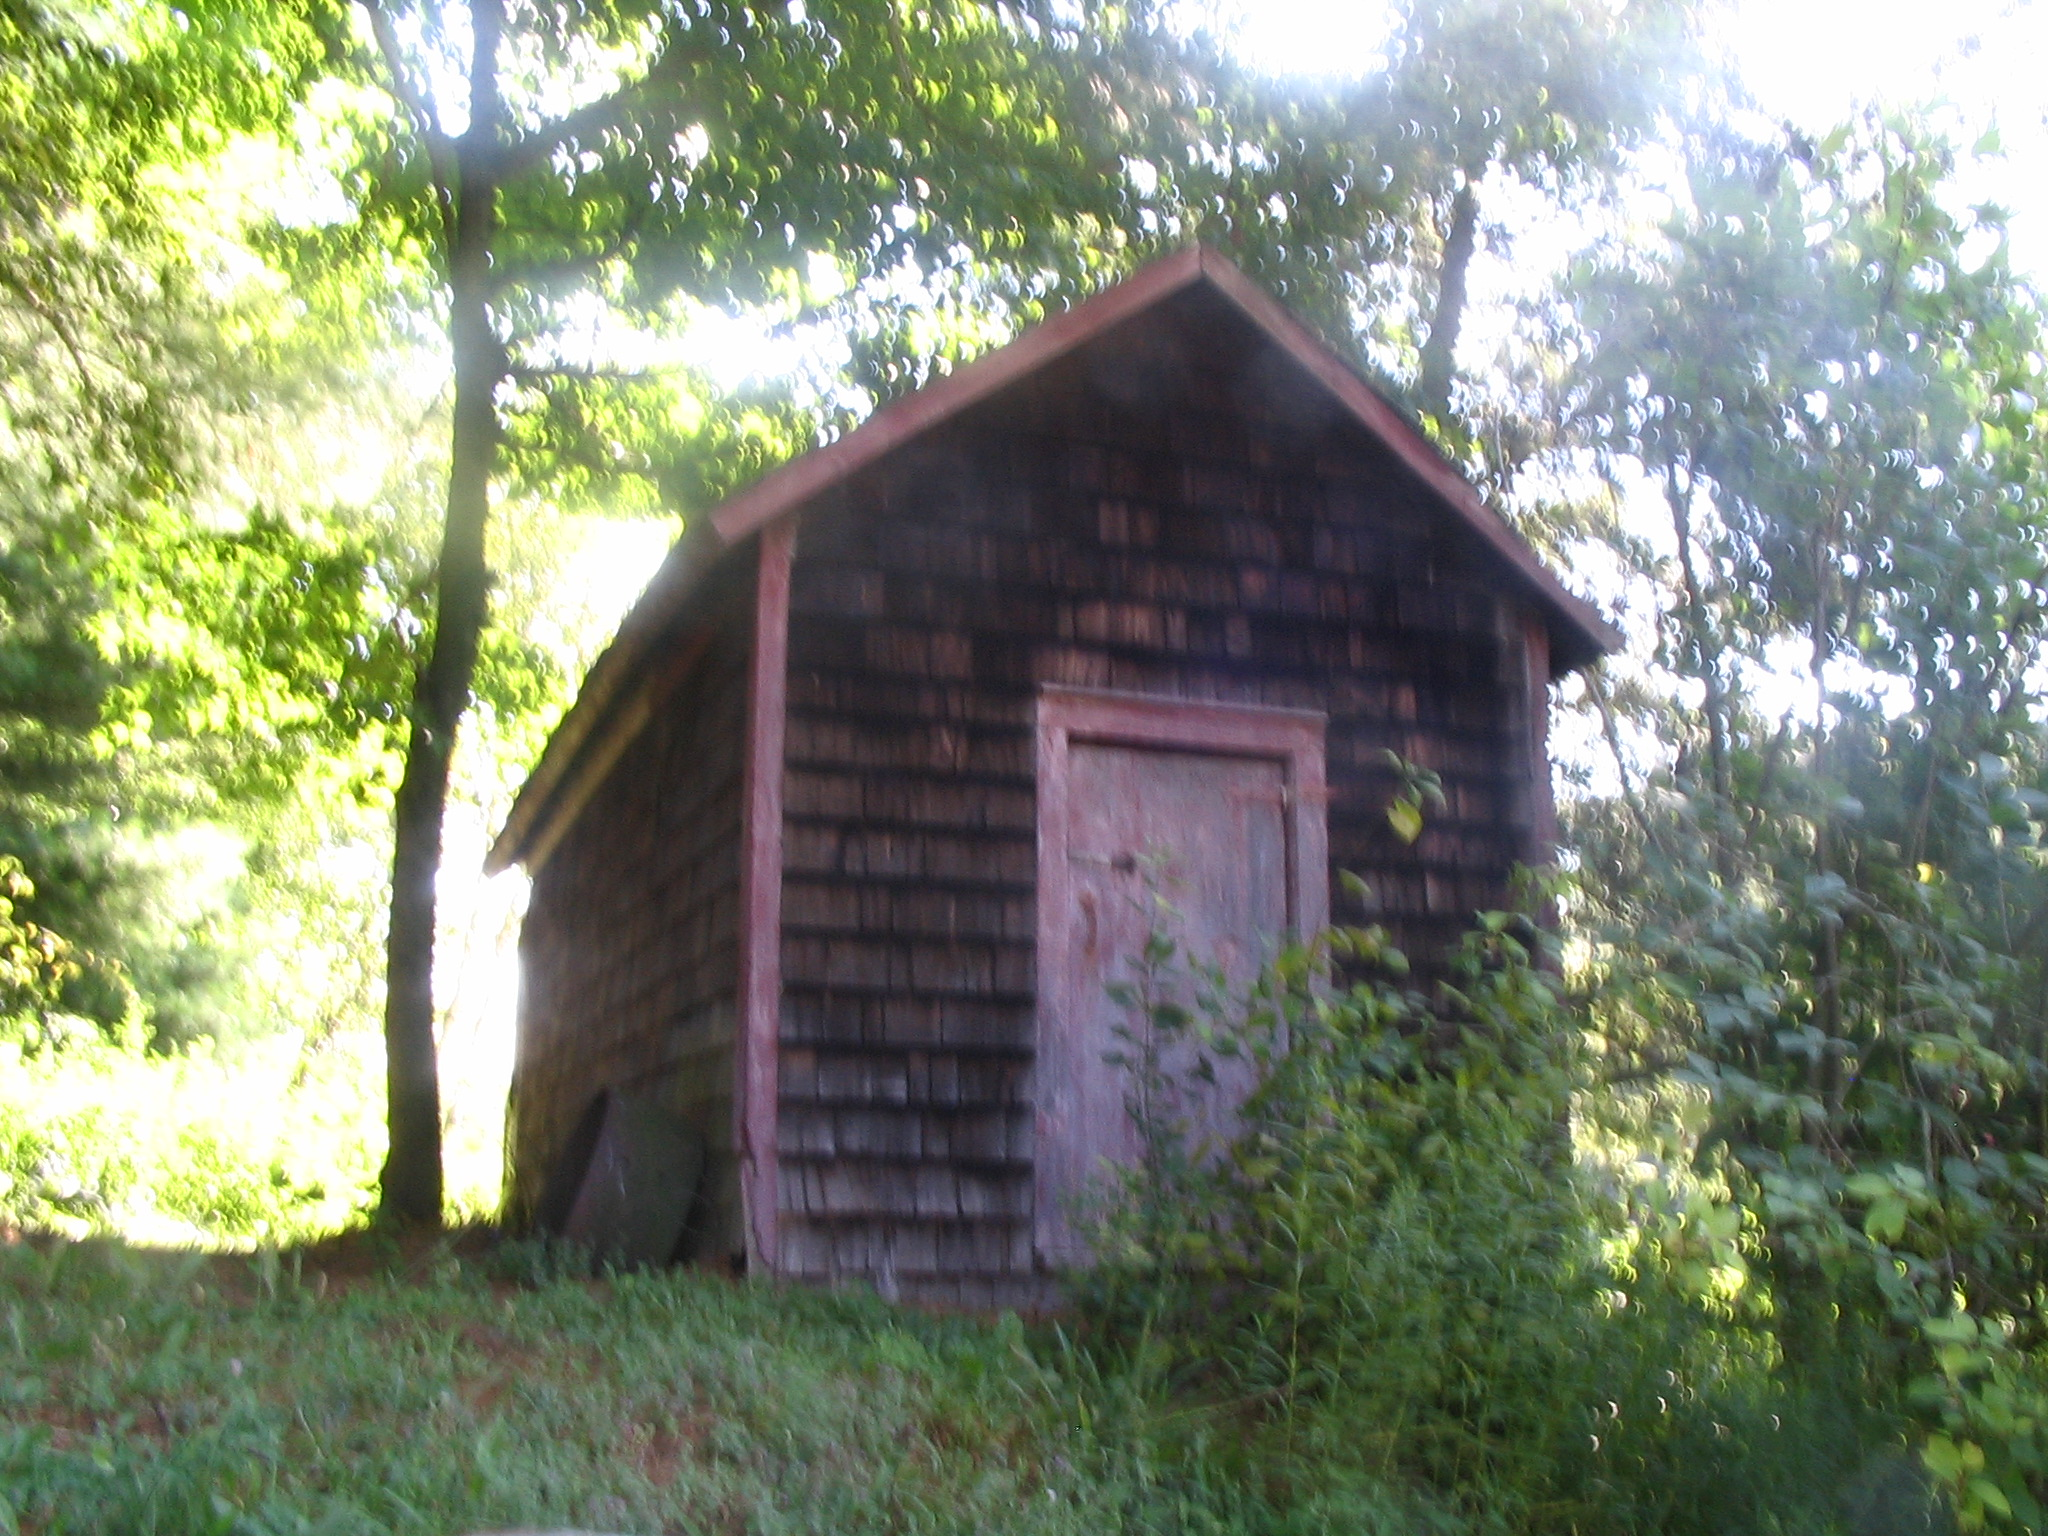 A photograph of the structure on the Beal/Freckelton property known as the Chicken House.